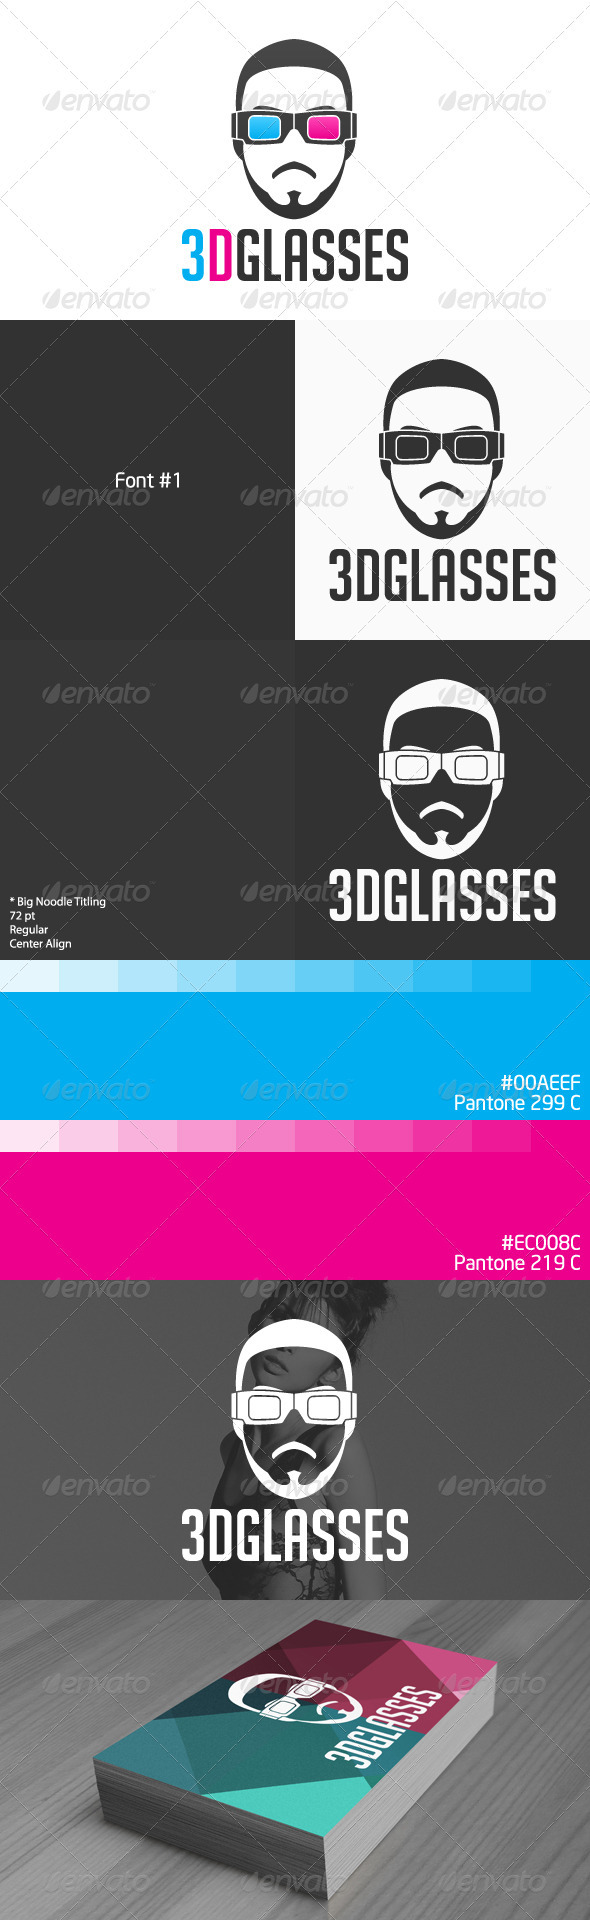 GraphicRiver 3D Glasses Logo 3585471